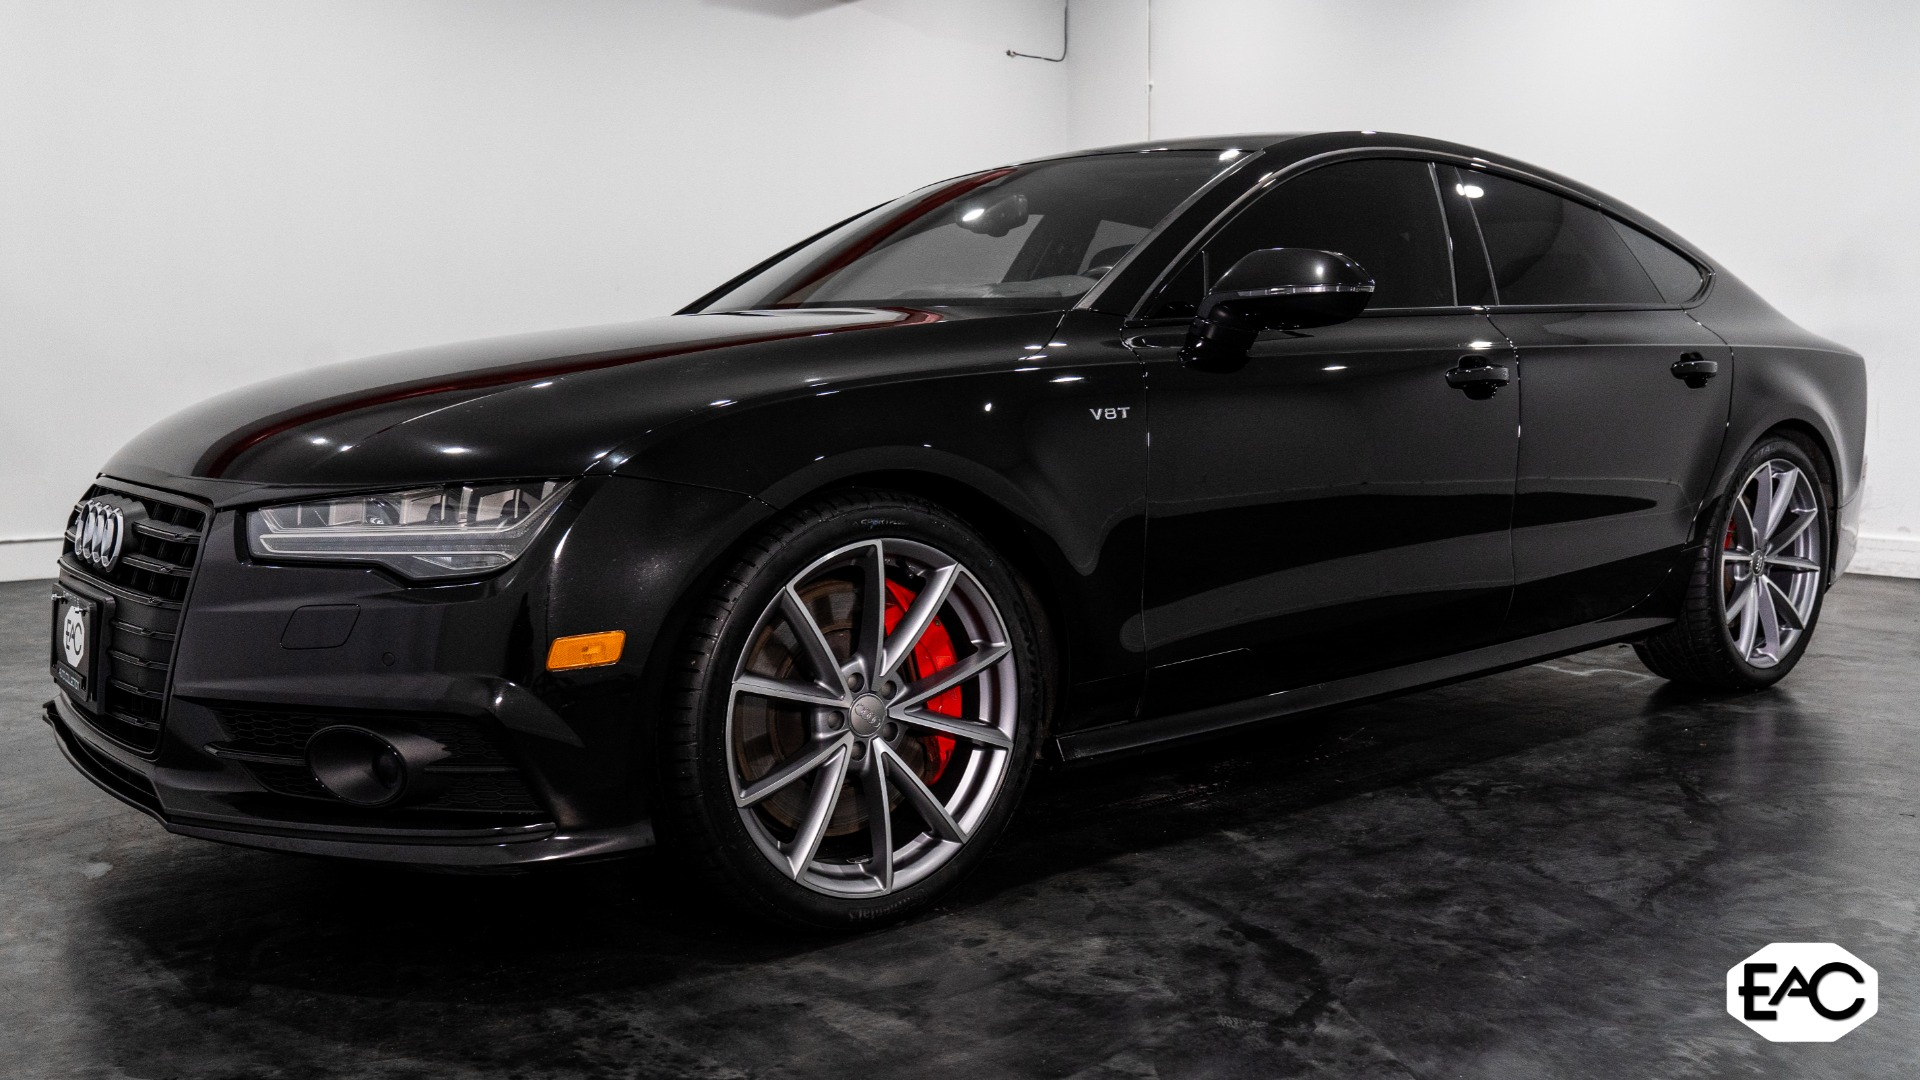 Used 2017 Audi S7 4.0T quattro Premium Plus for sale Sold at Empire Auto Collection in Warren MI 48091 1